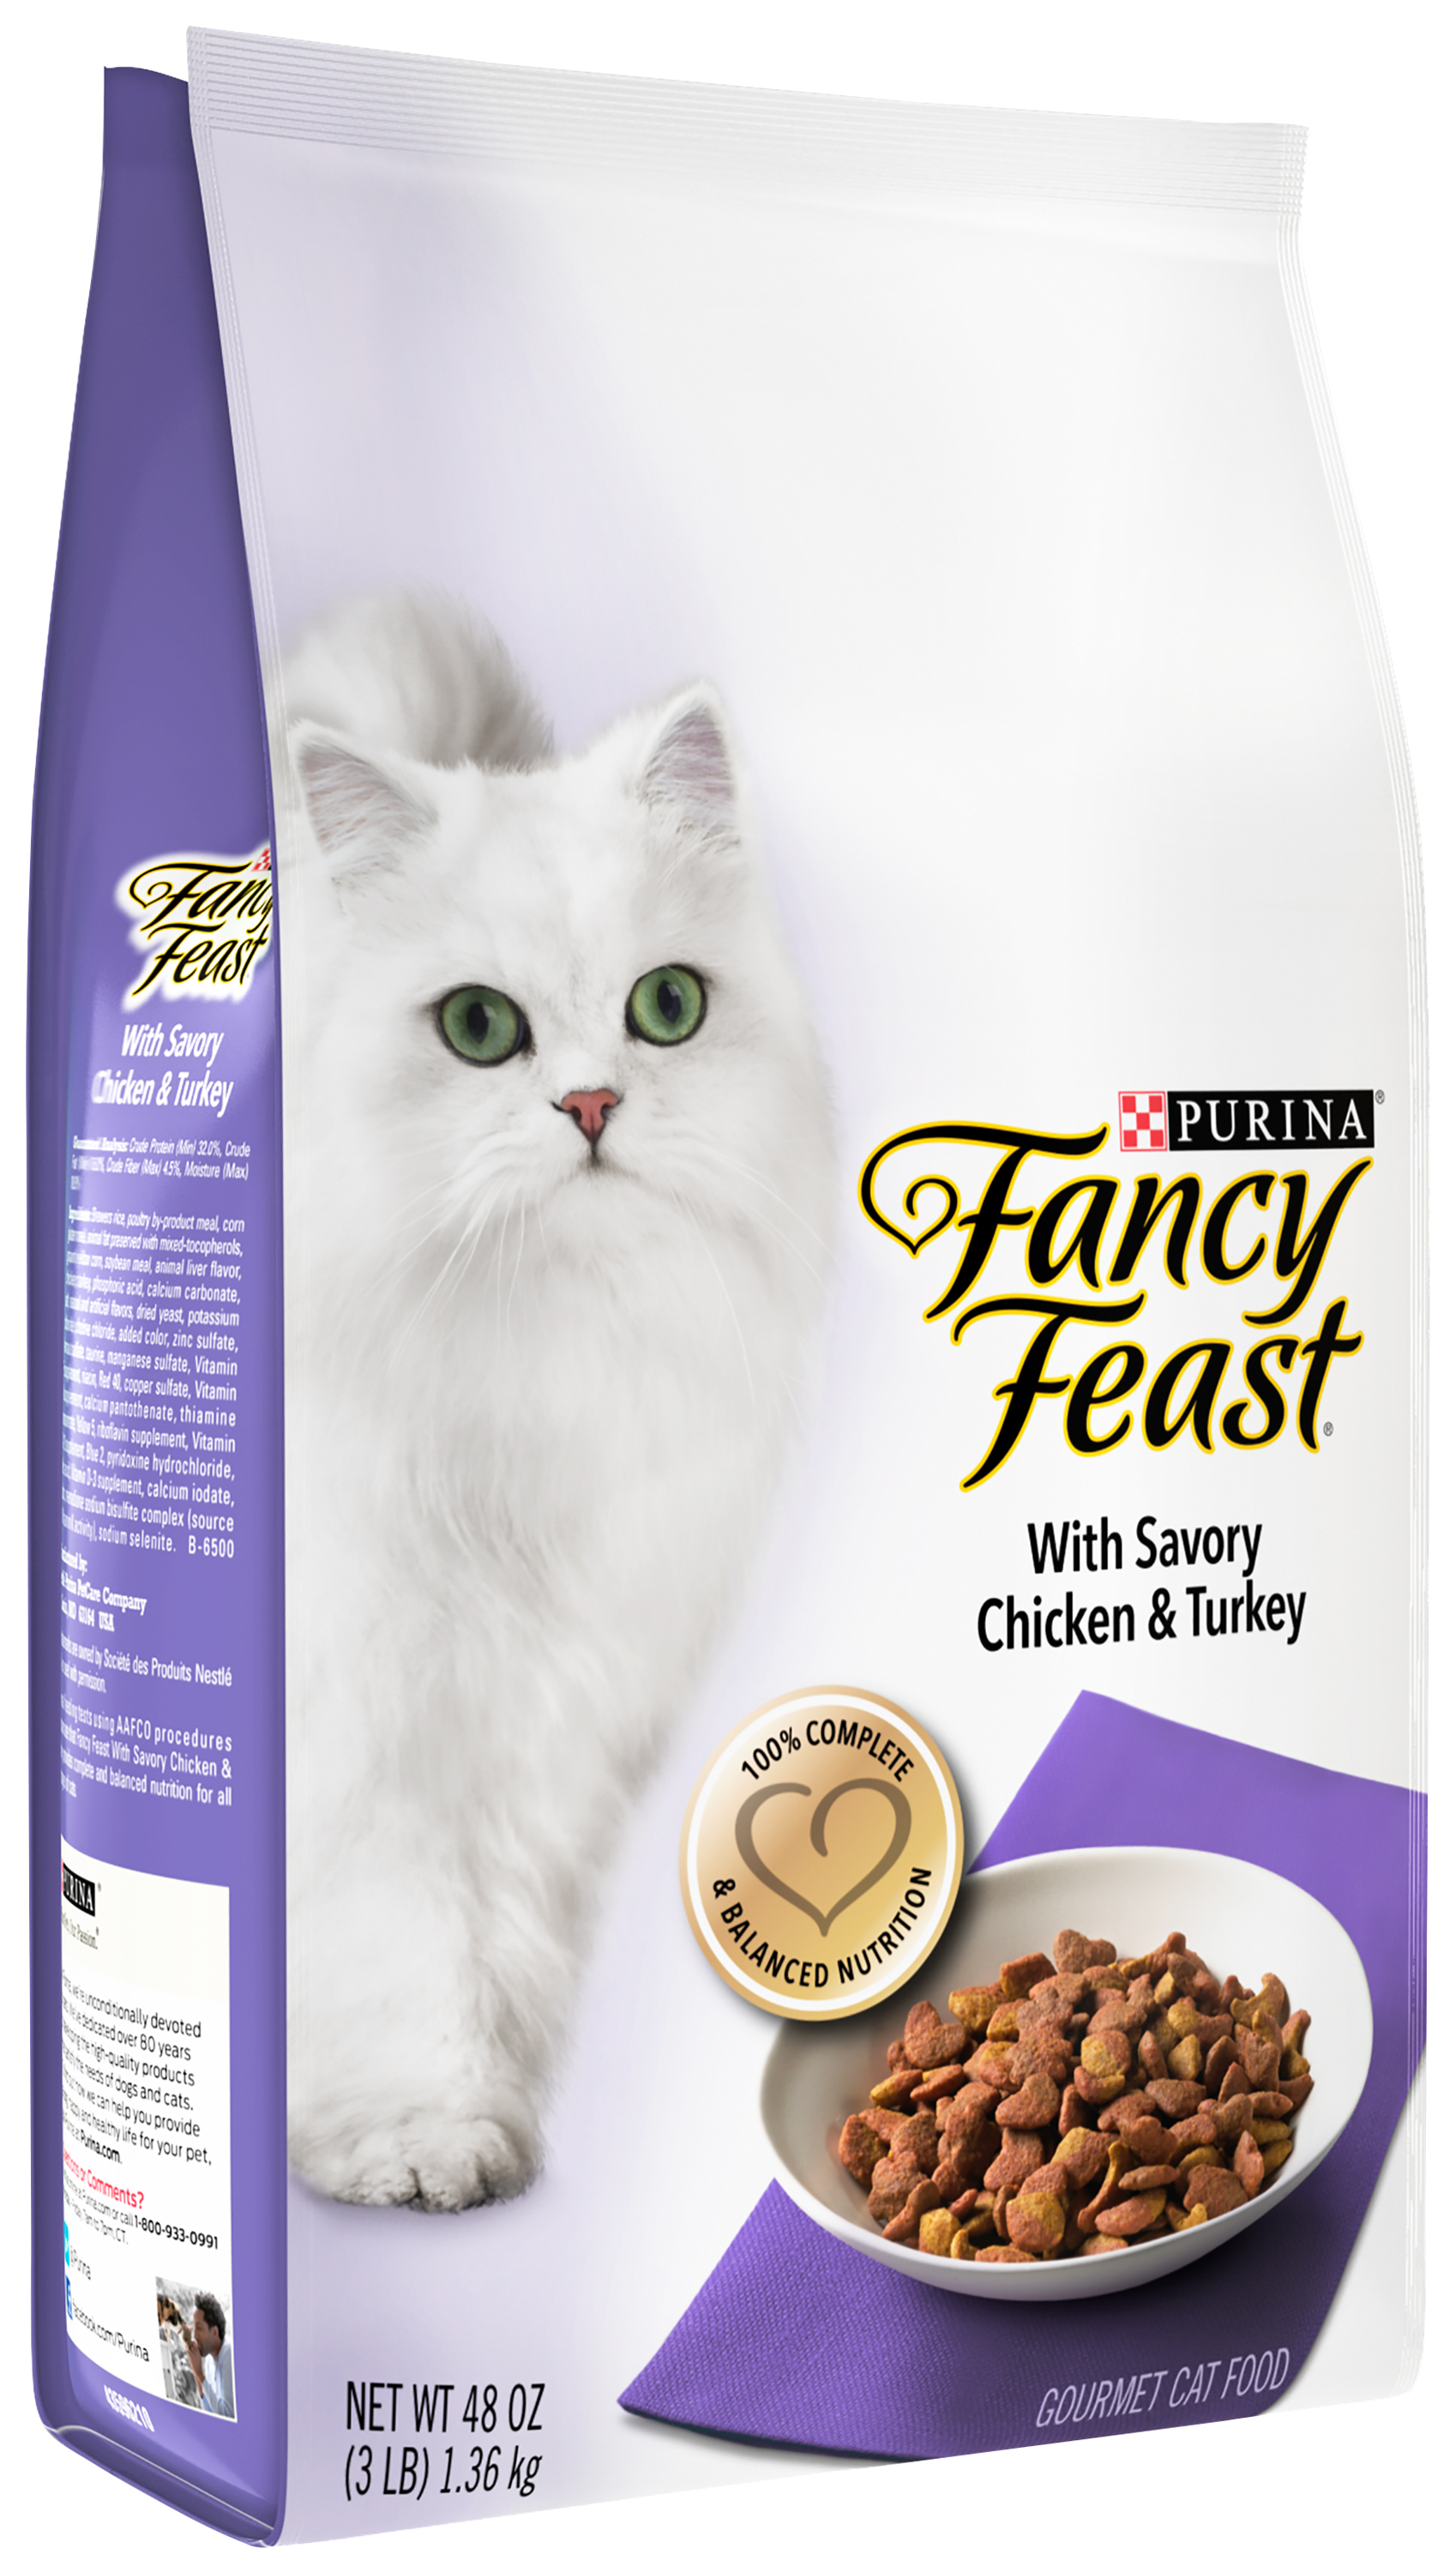 Purina Fancy Feast with Savory Chicken & Turkey Cat Food 3 lb. Bag